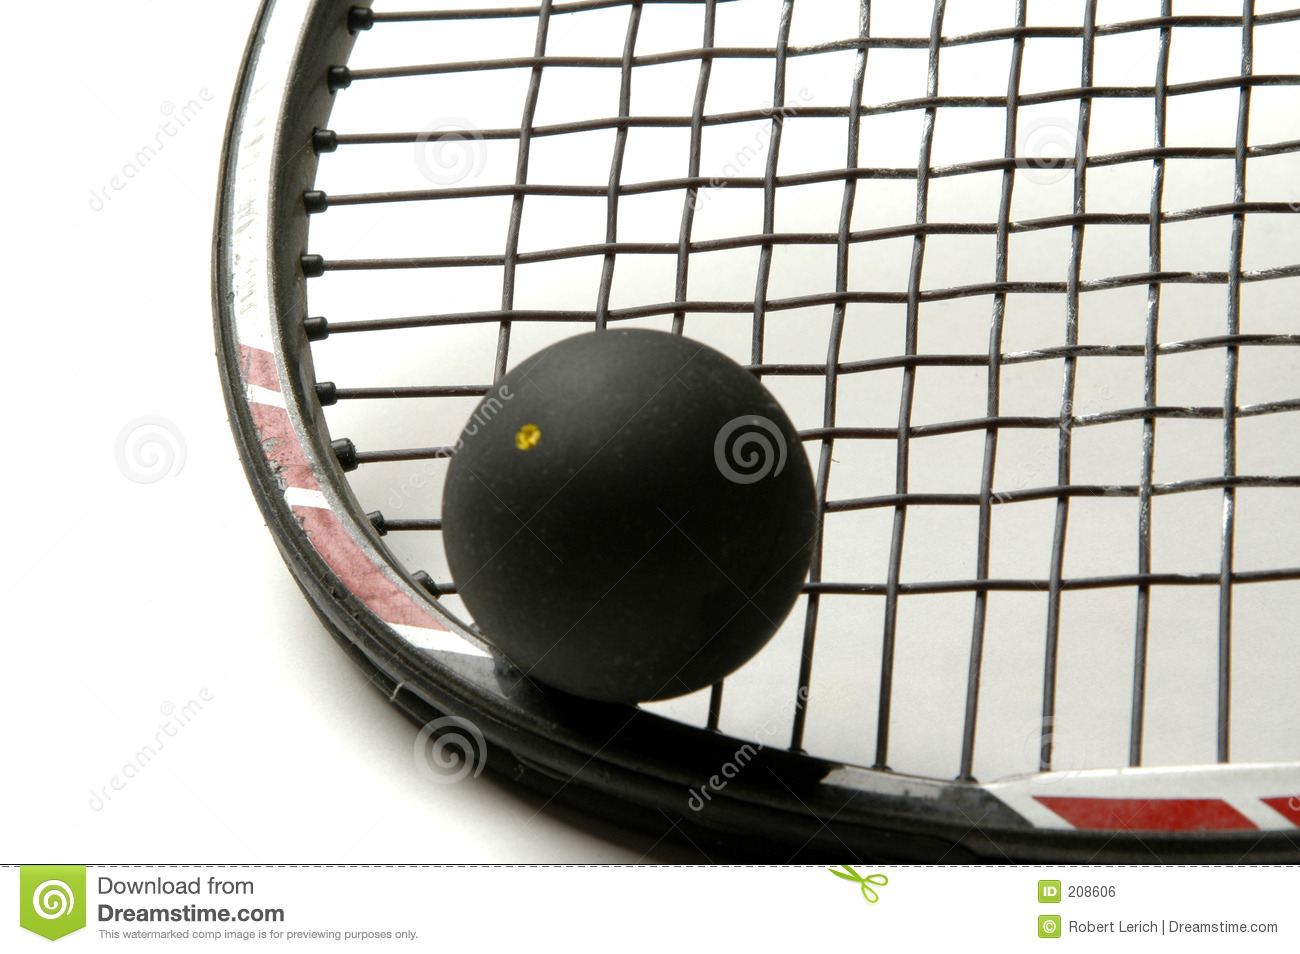 Squash Racquet With Squash Ball Royalty Free Stock Image